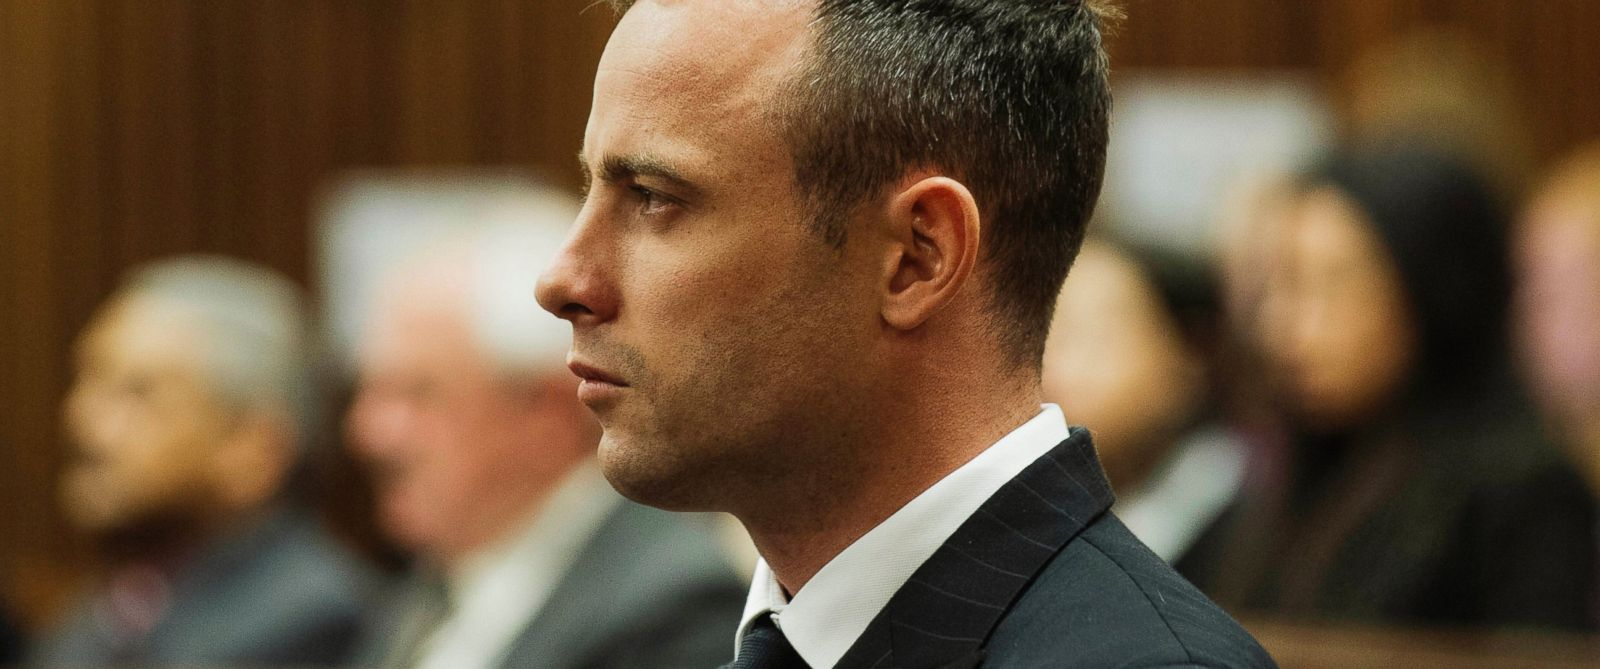 PHOTO: Oscar Pistorius listens to evidence being given in court, April 16, 2014, in Pretoria, South Africa.